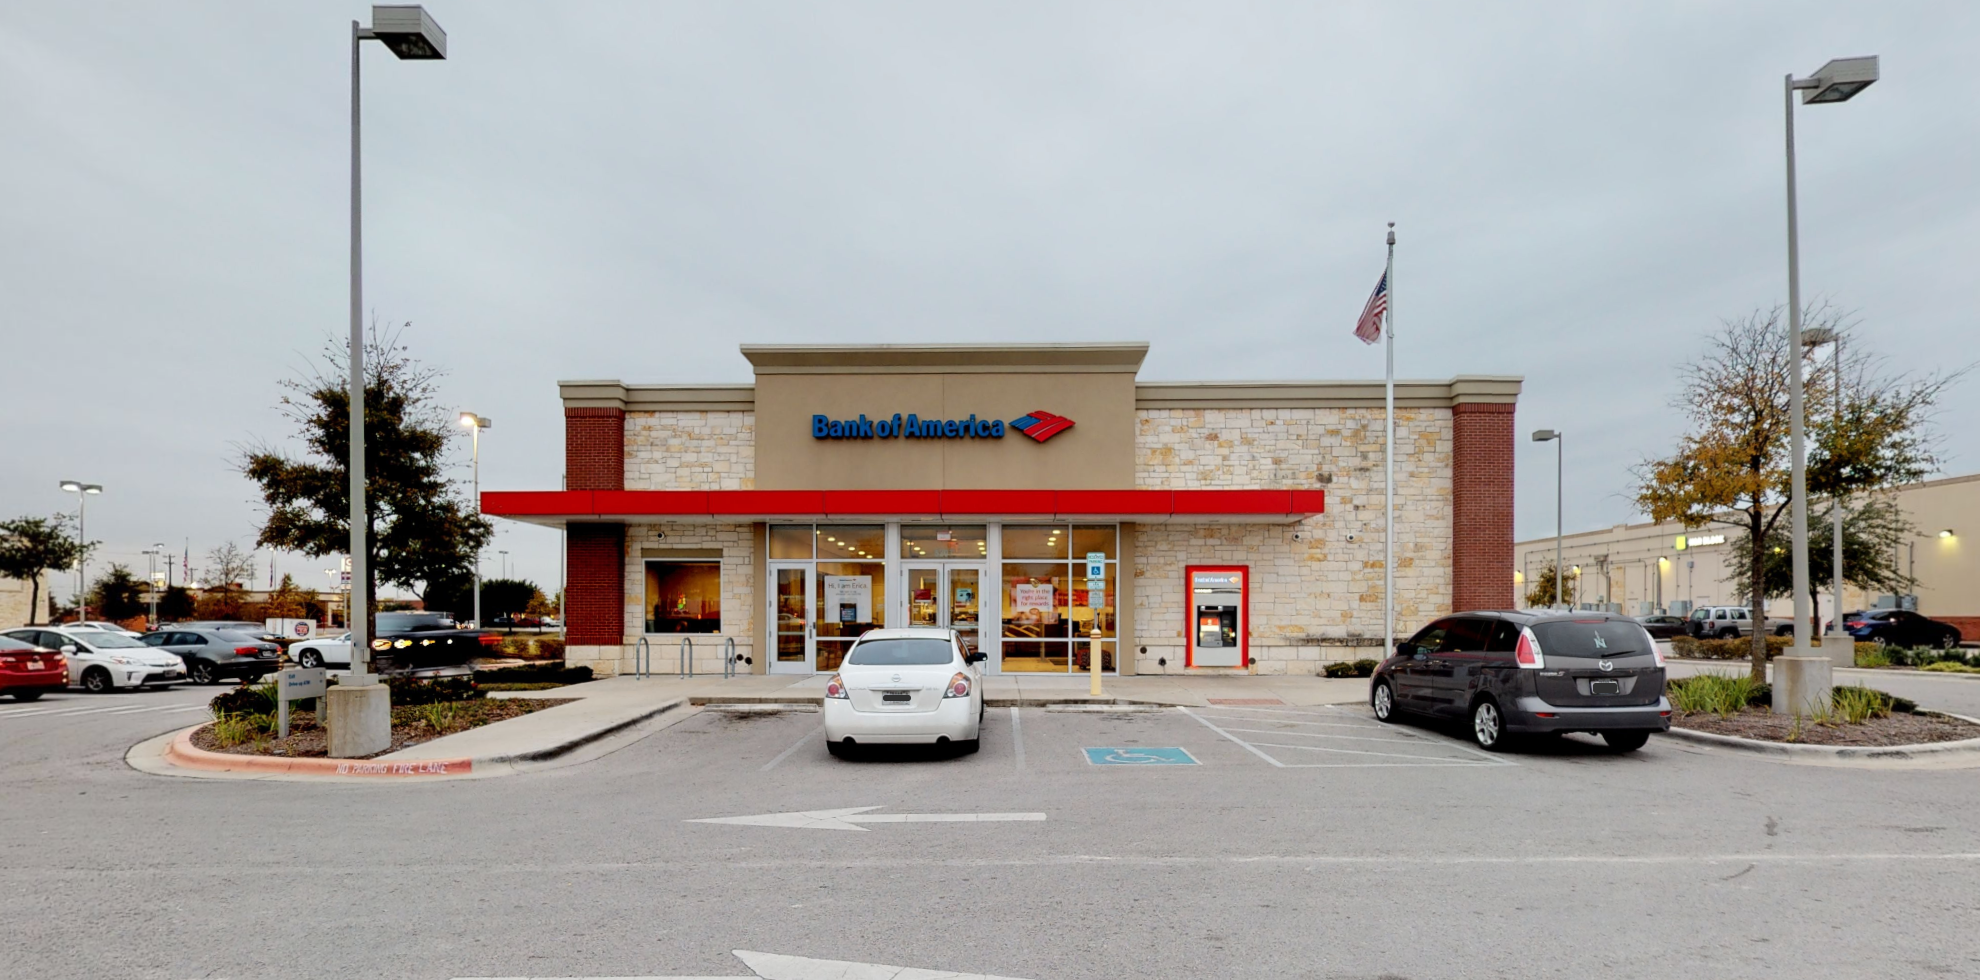 Bank of America financial center with drive-thru ATM   5207 Kyle Center Dr, Kyle, TX 78640